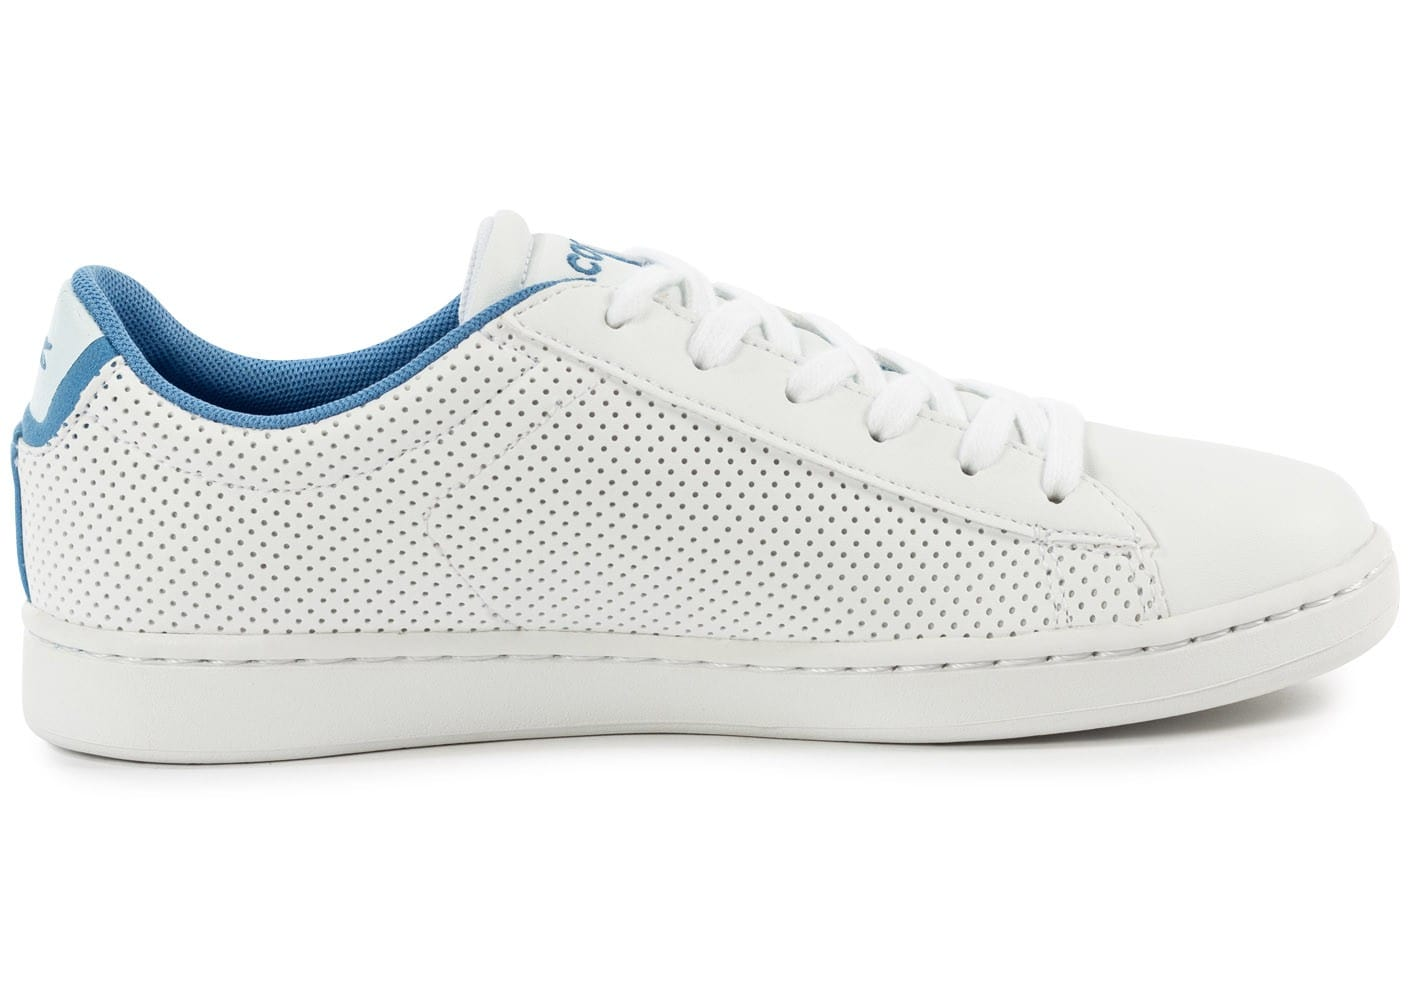 Lacoste carnaby evo junior blanche et bleue chaussures - Lacoste carnaby evo cls baskets en cuir perfore ...